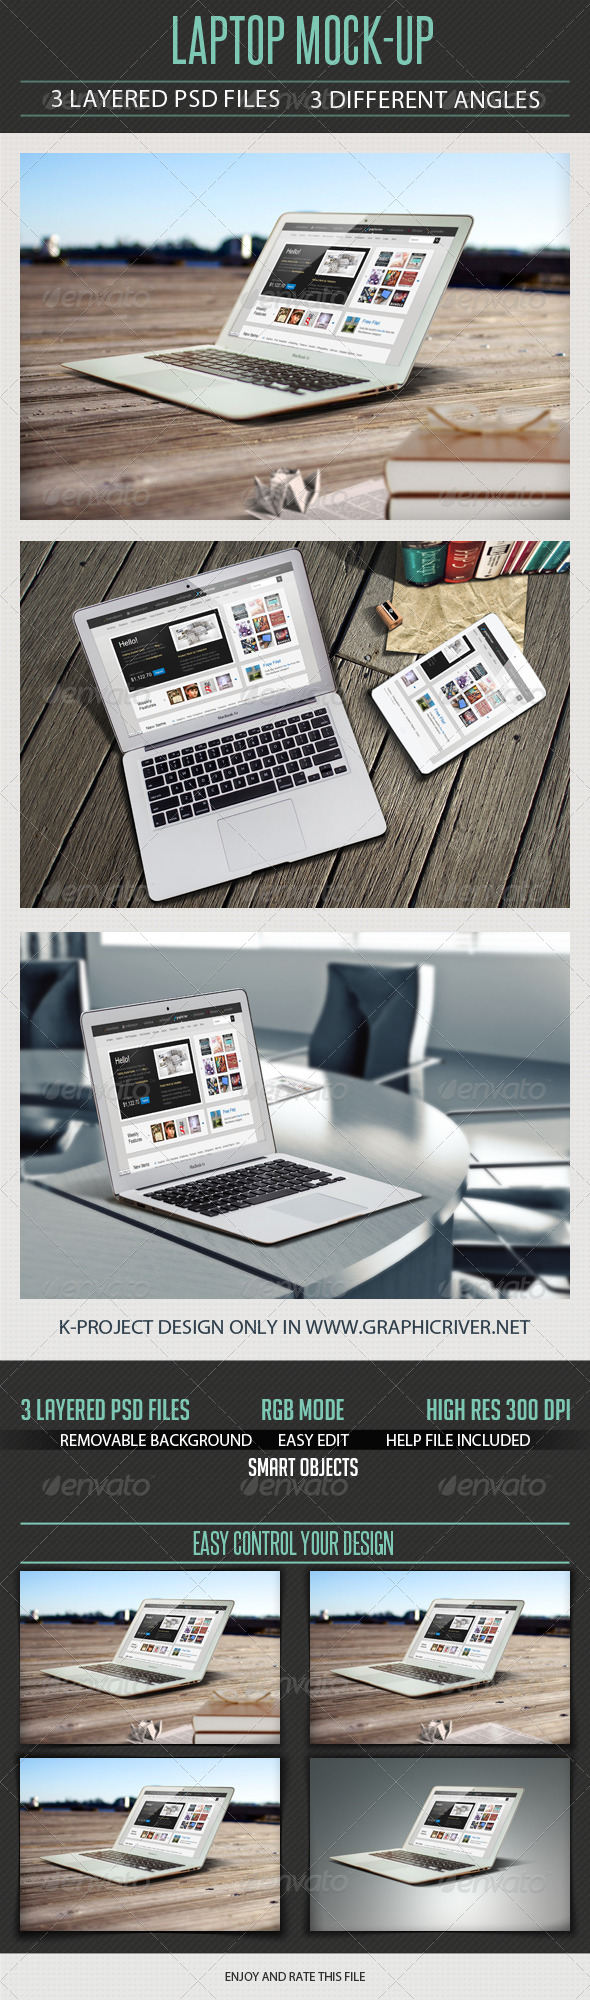 GraphicRiver Laptop Mock Up 6527958